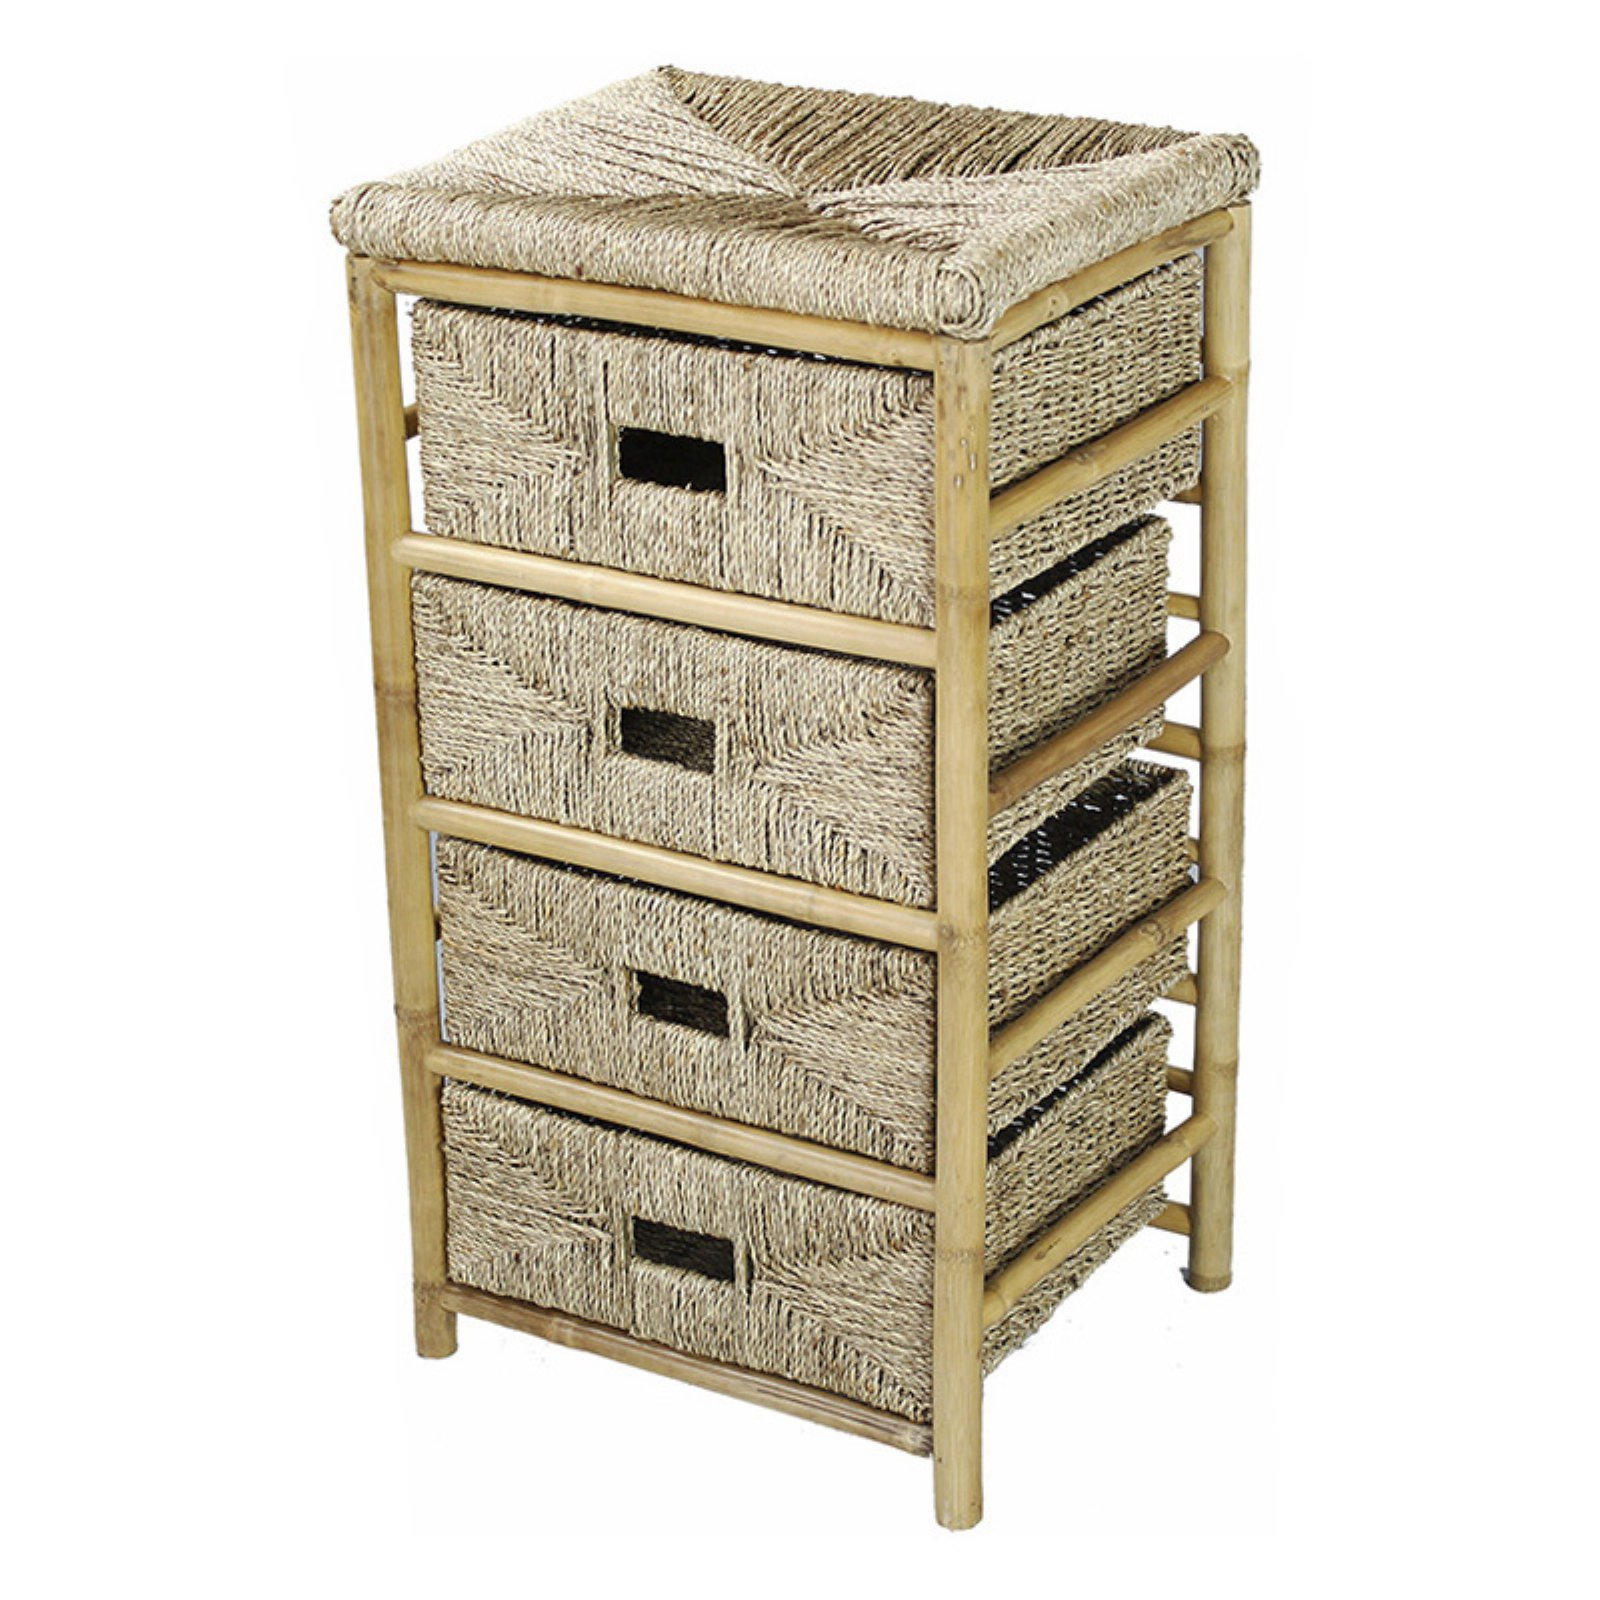 Heather Ann Creations Kaleo 4 Drawer Bamboo And Seagr Open Frame Storage Cabinet